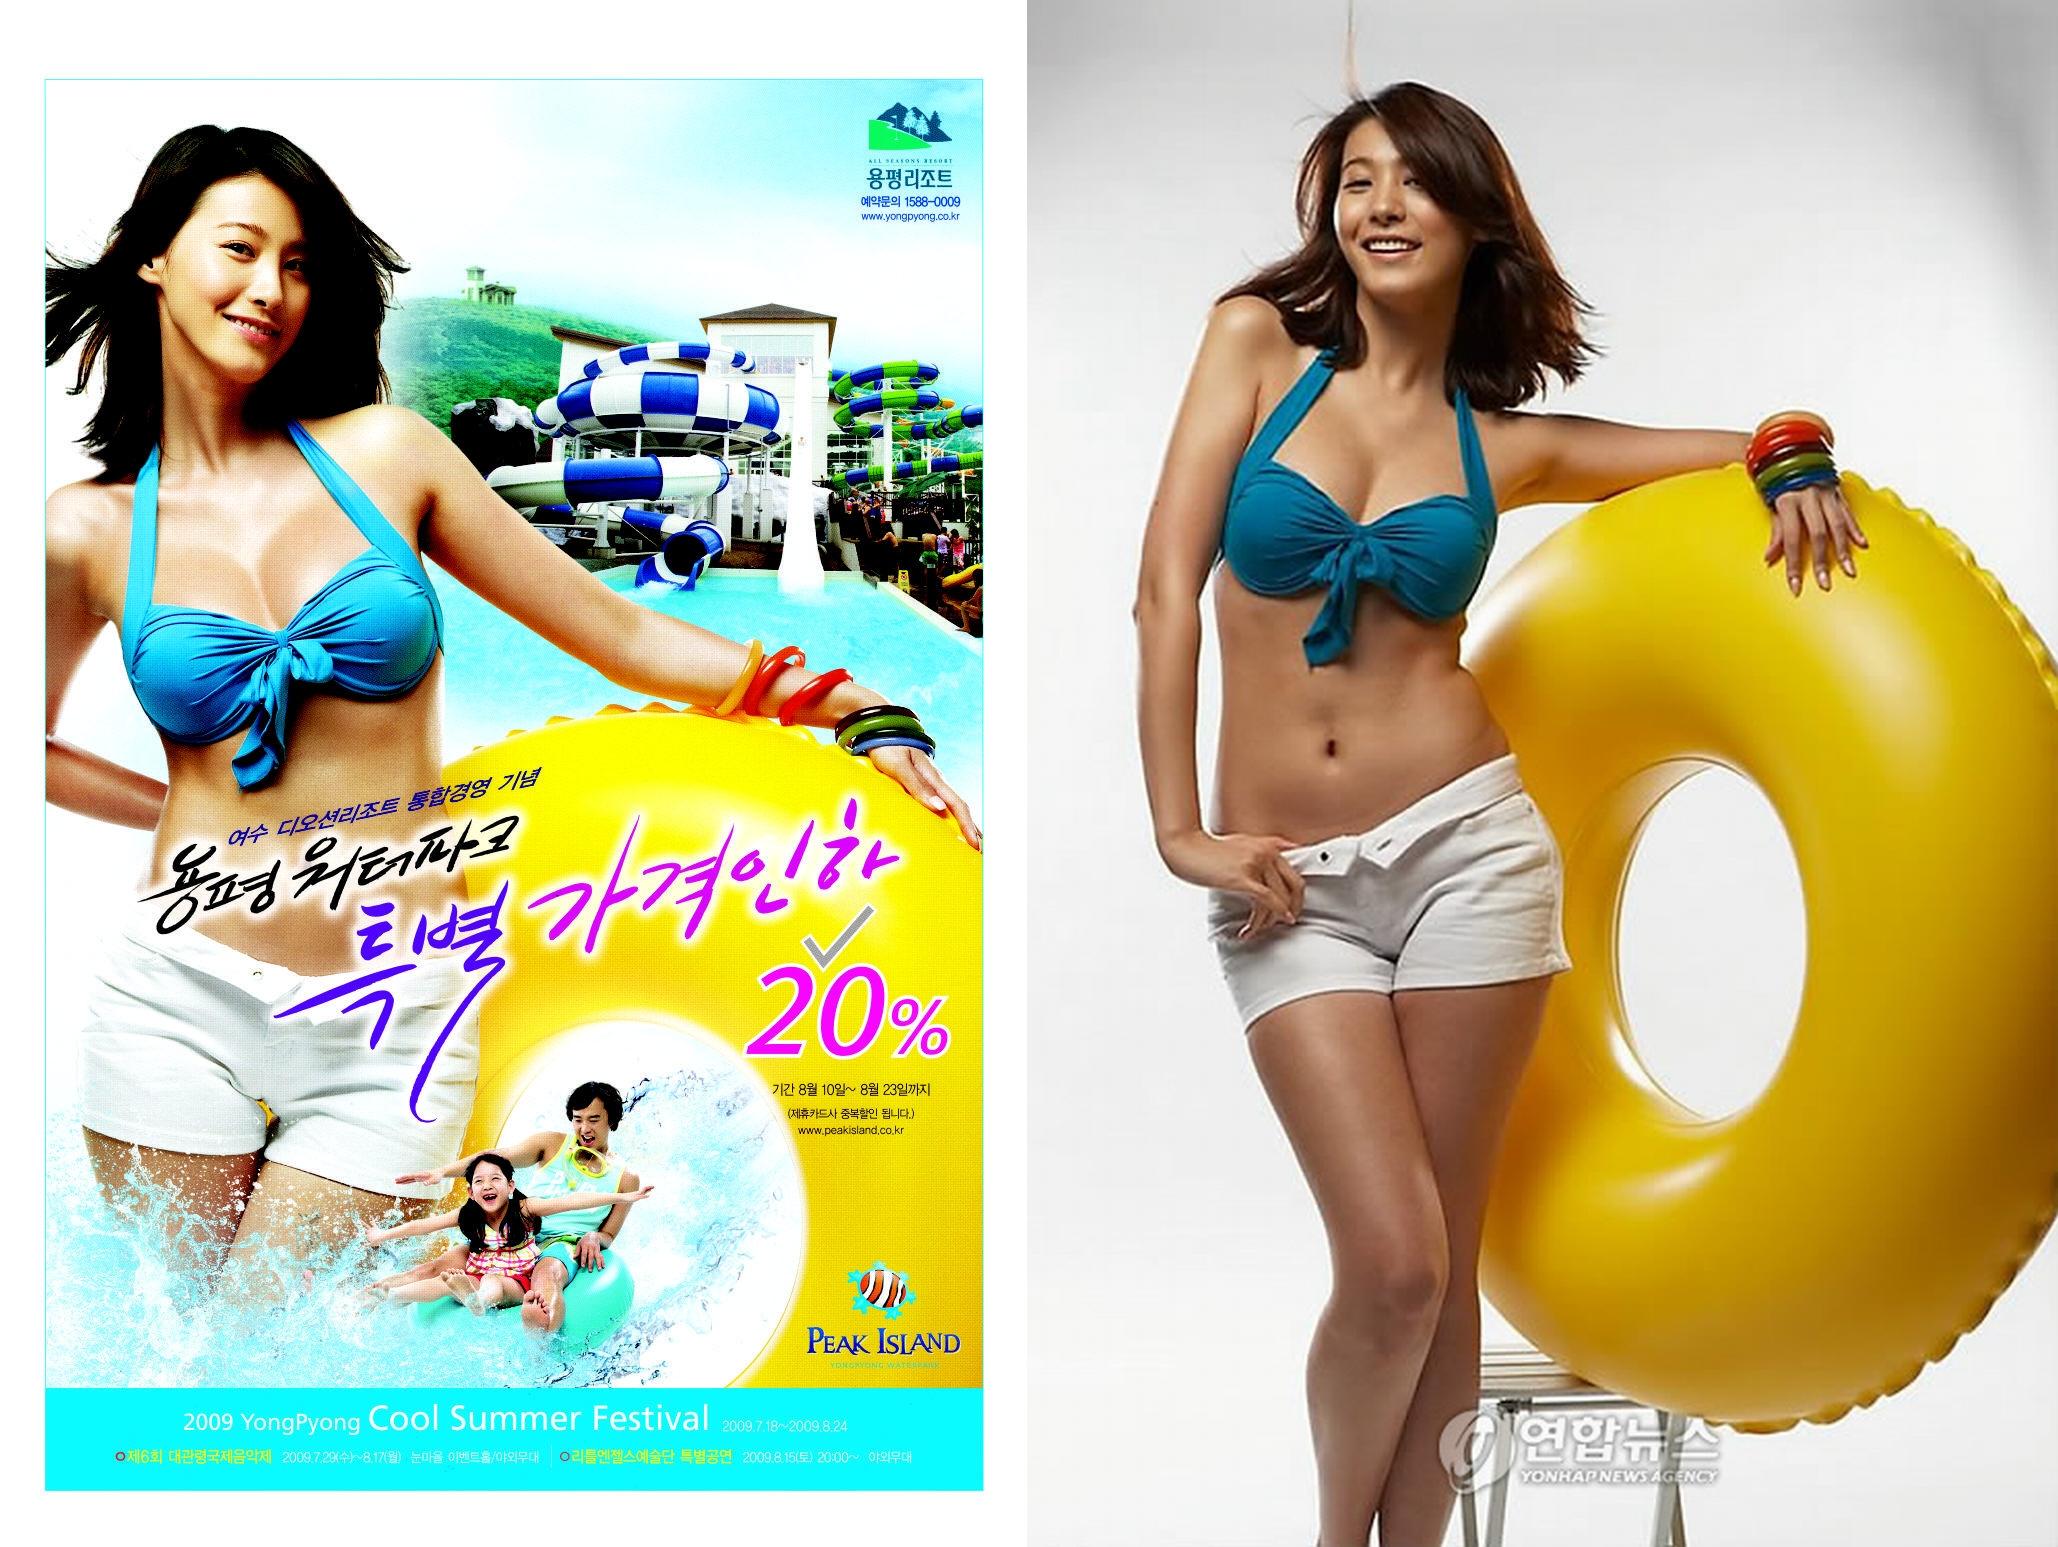 Yun In-yeong Yongpyong Peak Island Advertisement Photoshop